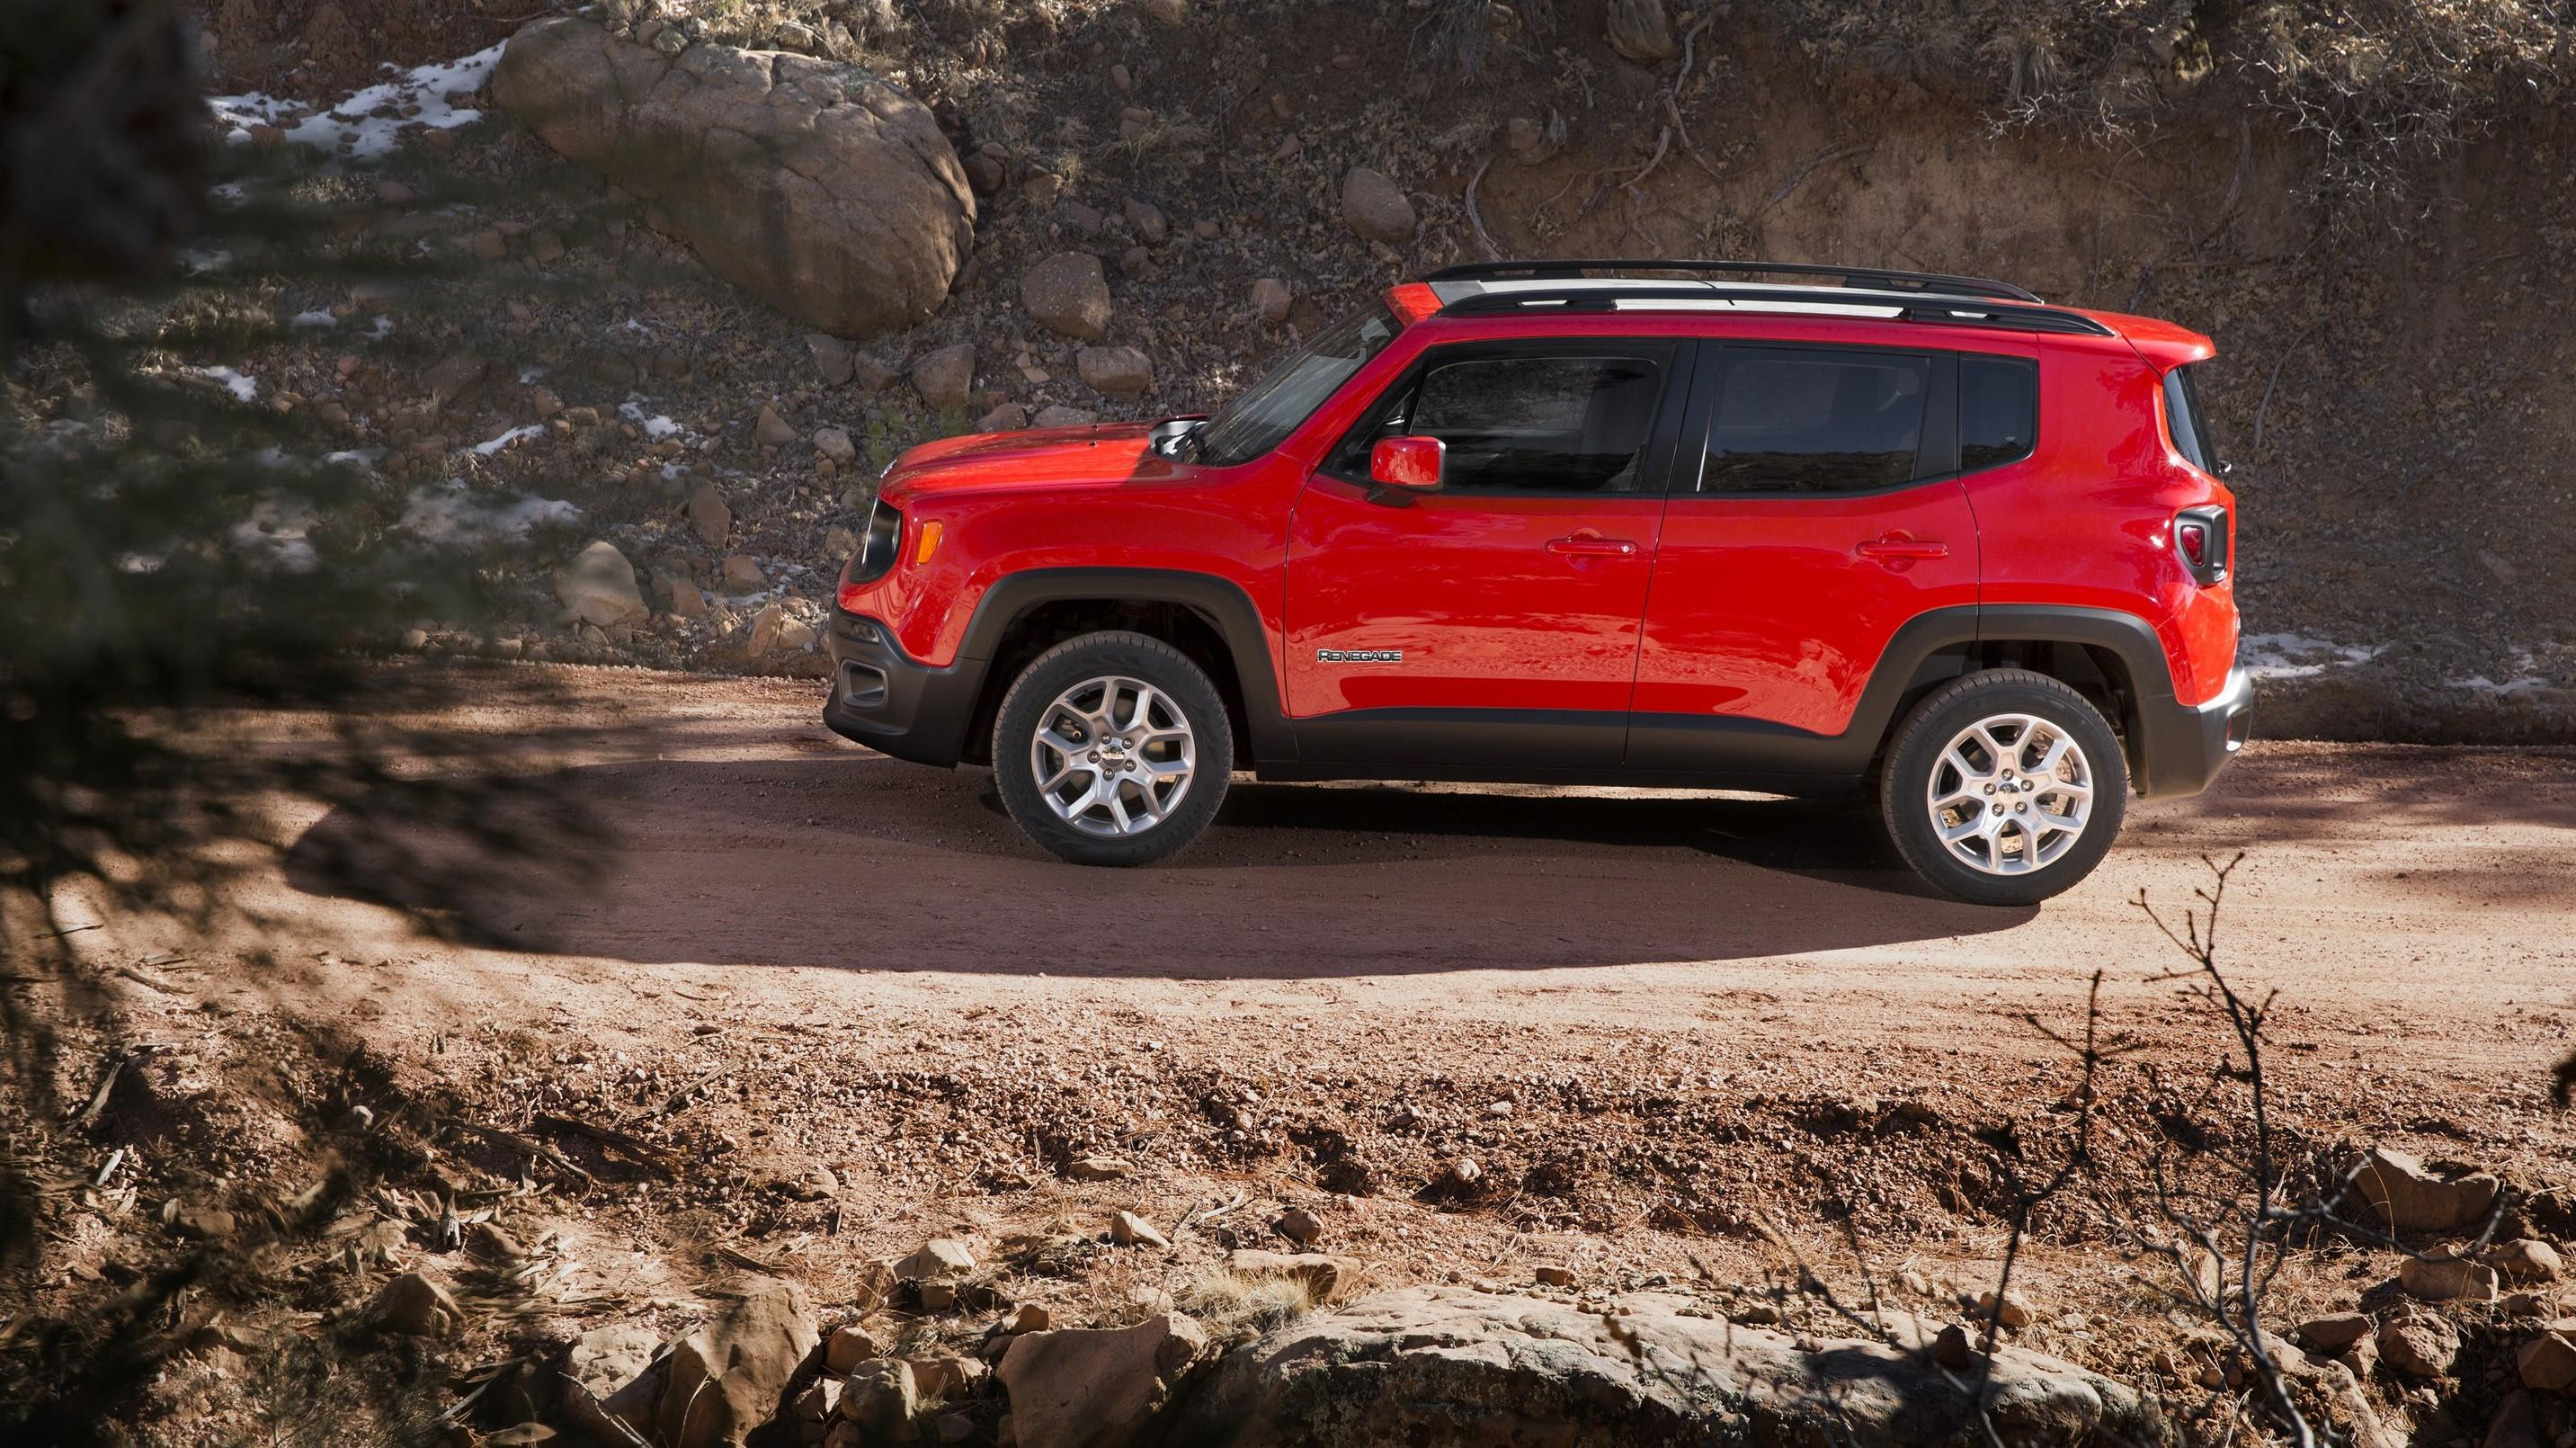 Novo-jeep-renegade-2015-2016-6